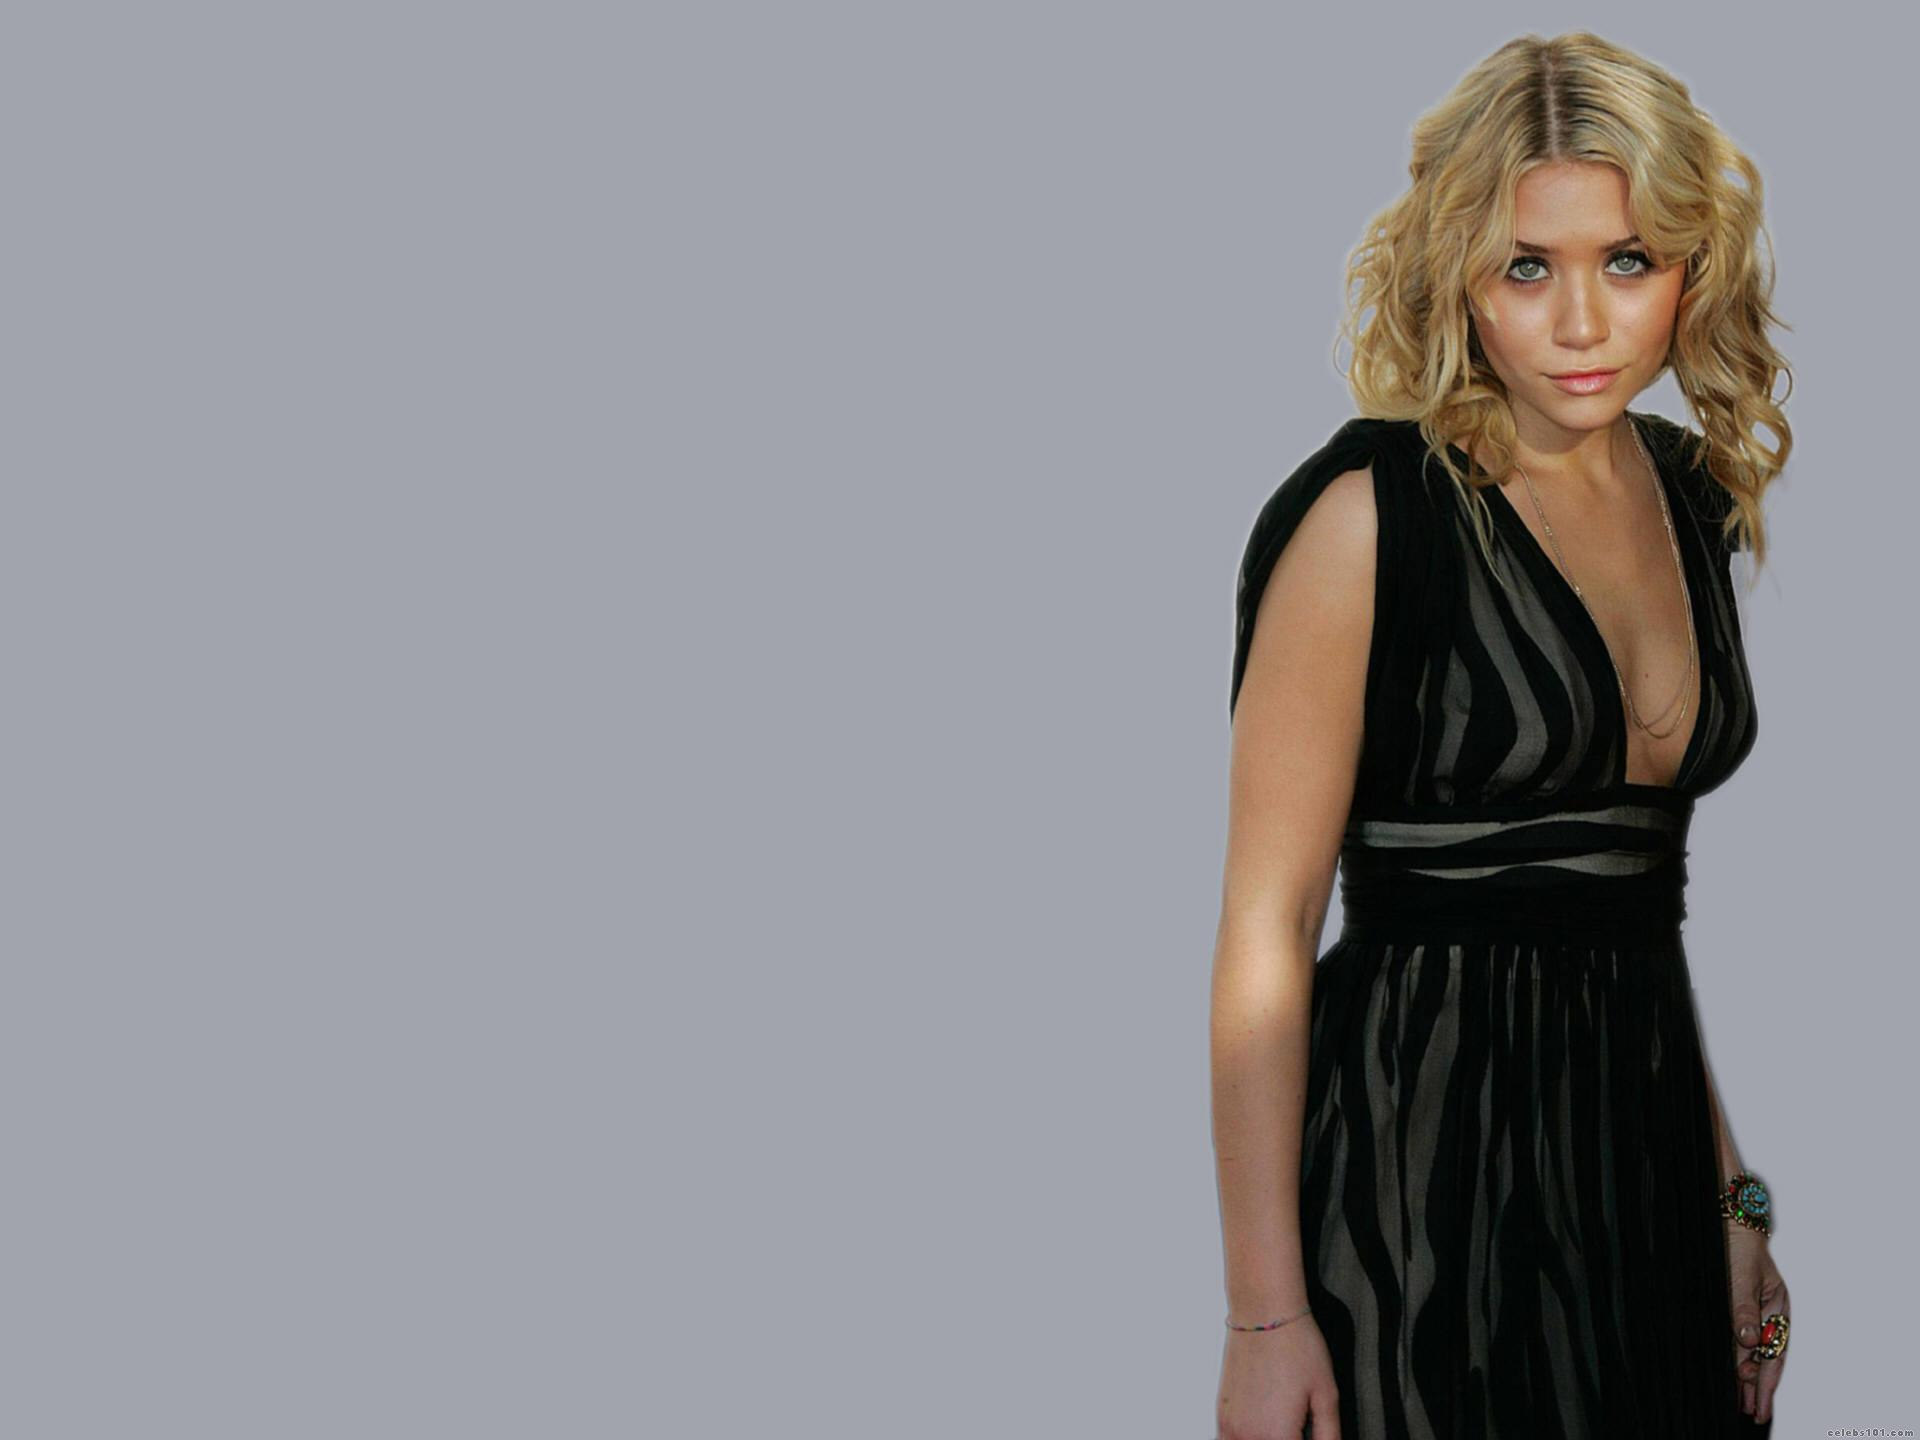 Olsen Twins High quality wallpaper size 1920x1440 of Olsen 1920x1440